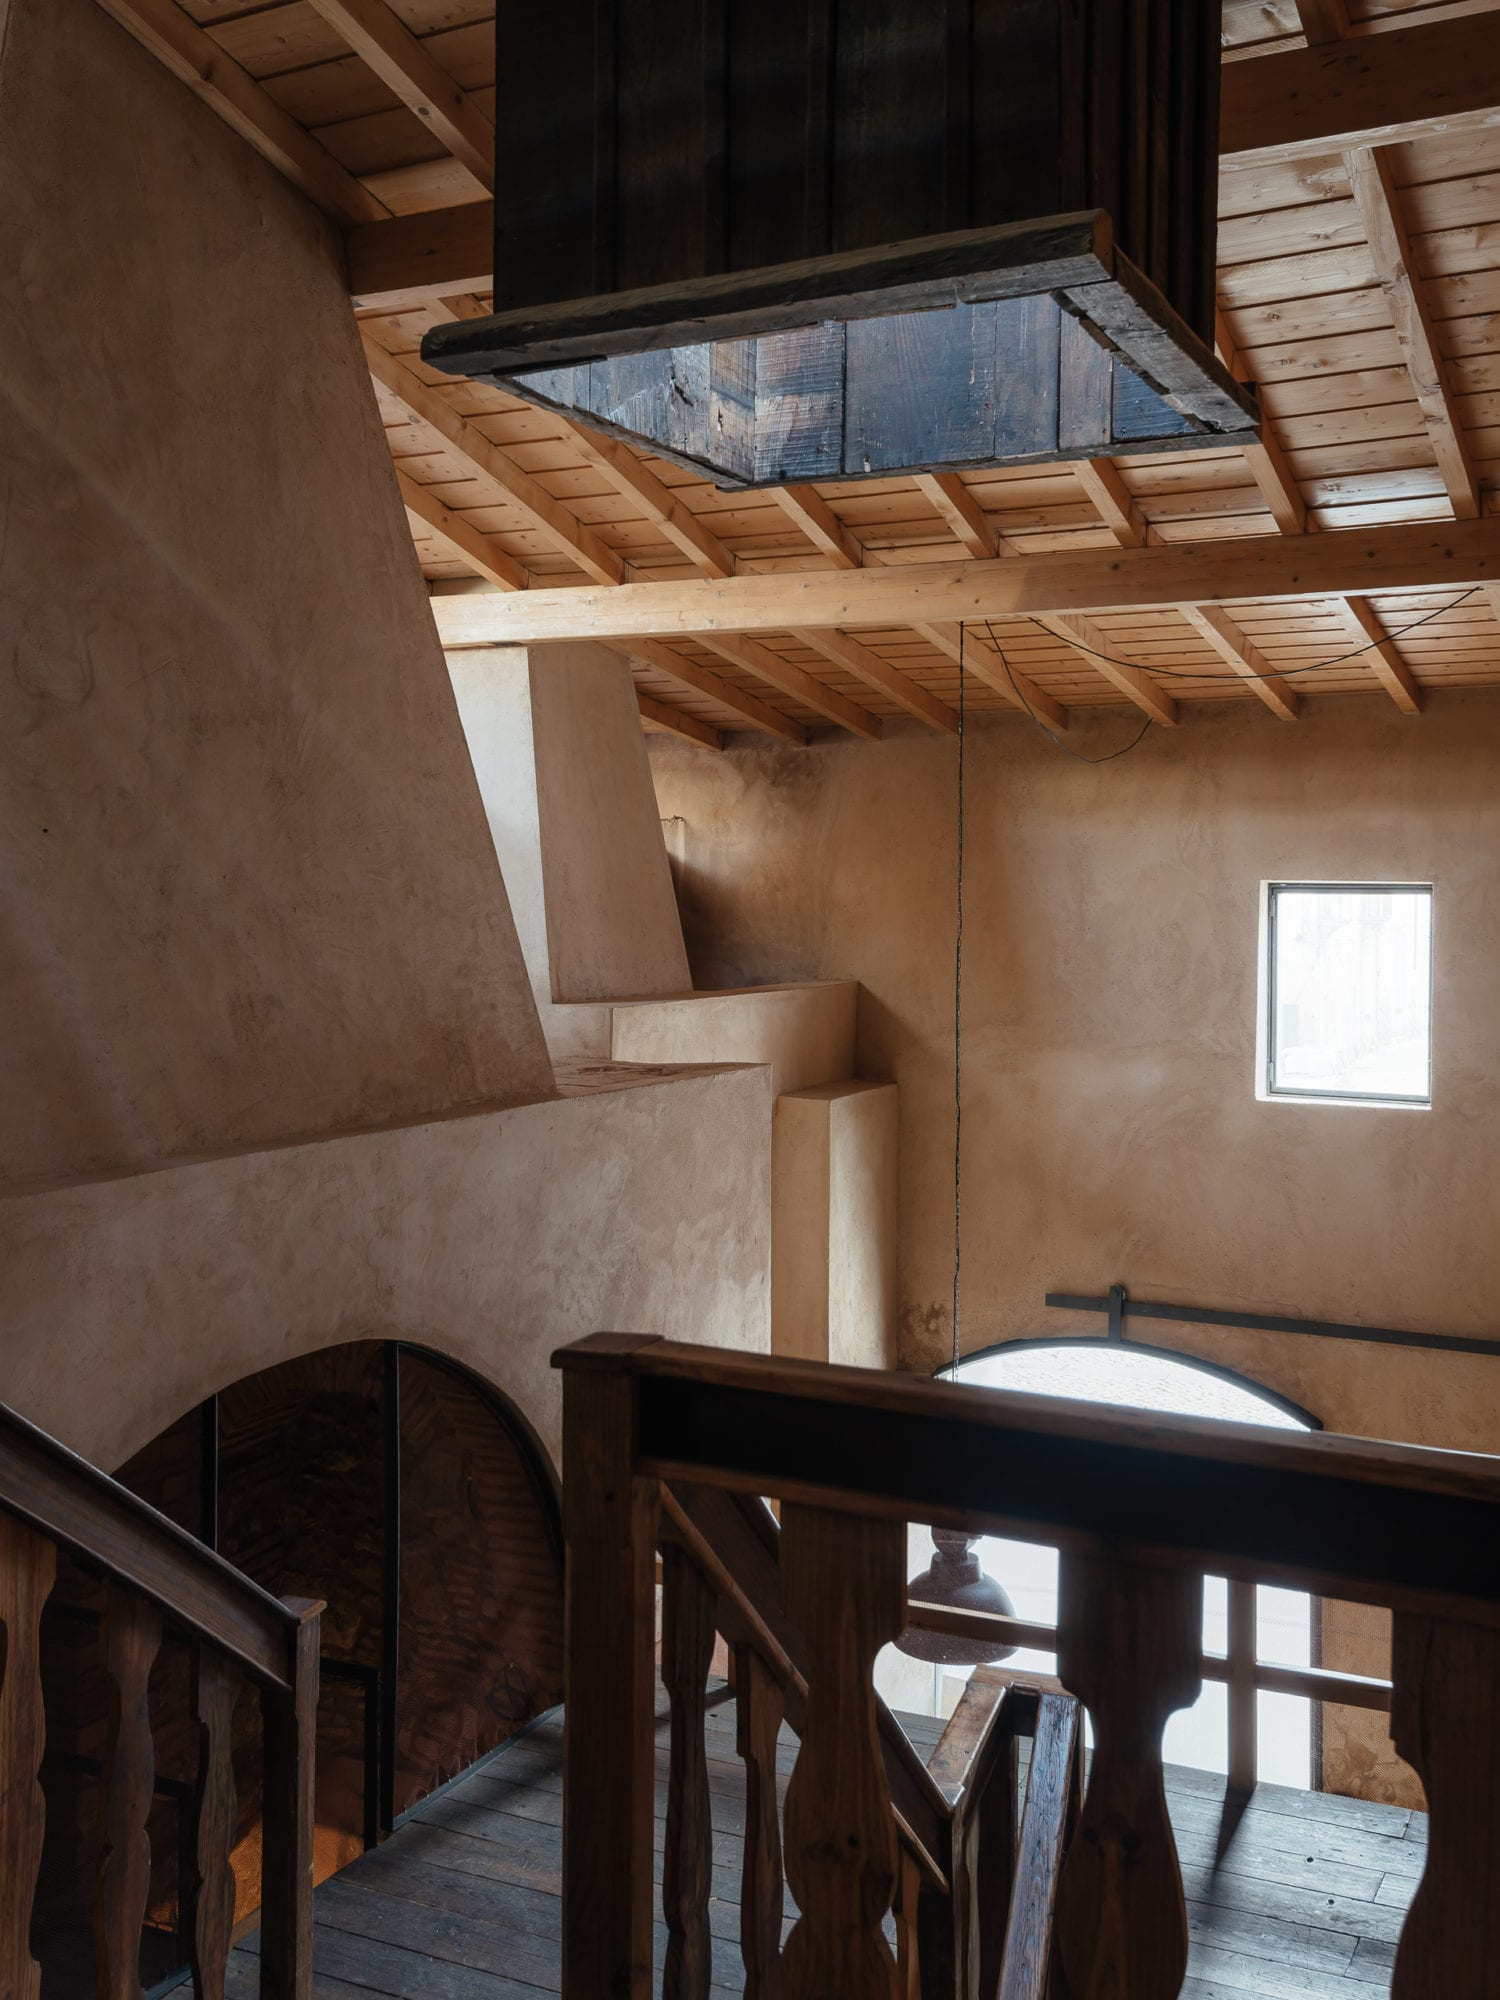 Luisa Bebiano And Atelier Do Corvo Renovation Old Ceramic Society Of Coimbra 18th Century Building Yellowtrace 20